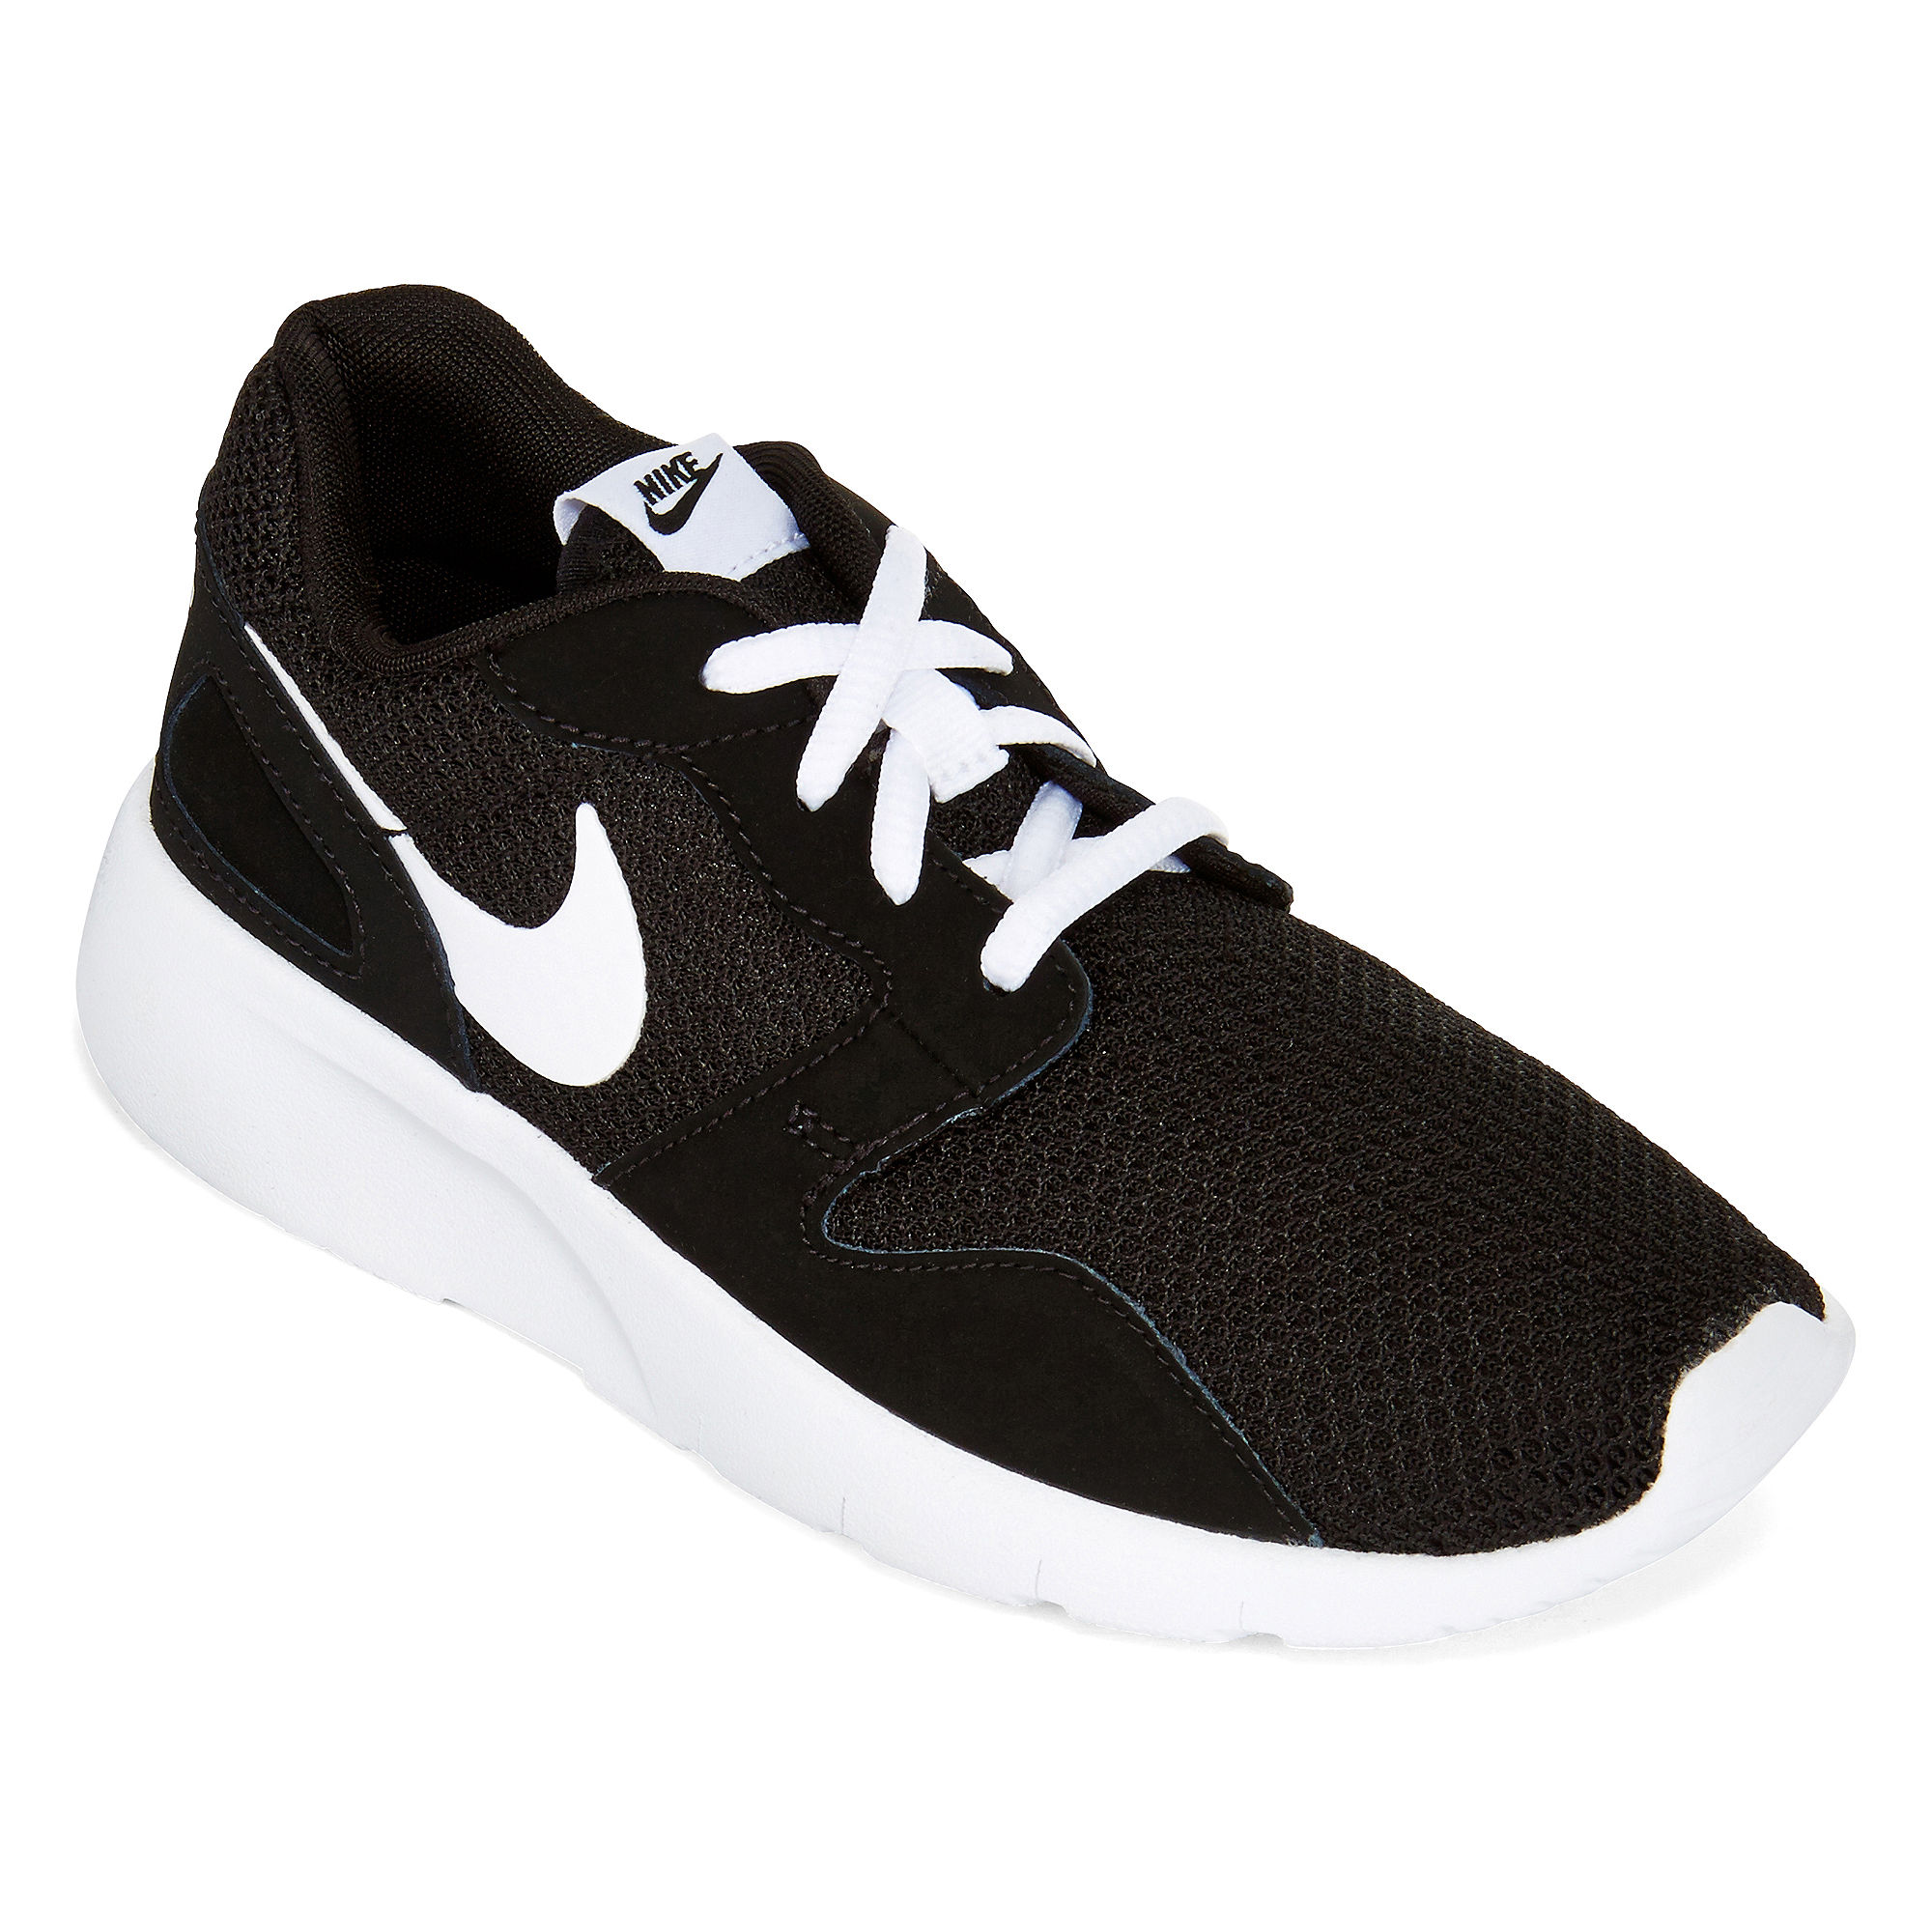 UPC 888408429513 - Nike Kaishi Boys Running Shoes - Little Kids Big ... b4e60888acf6